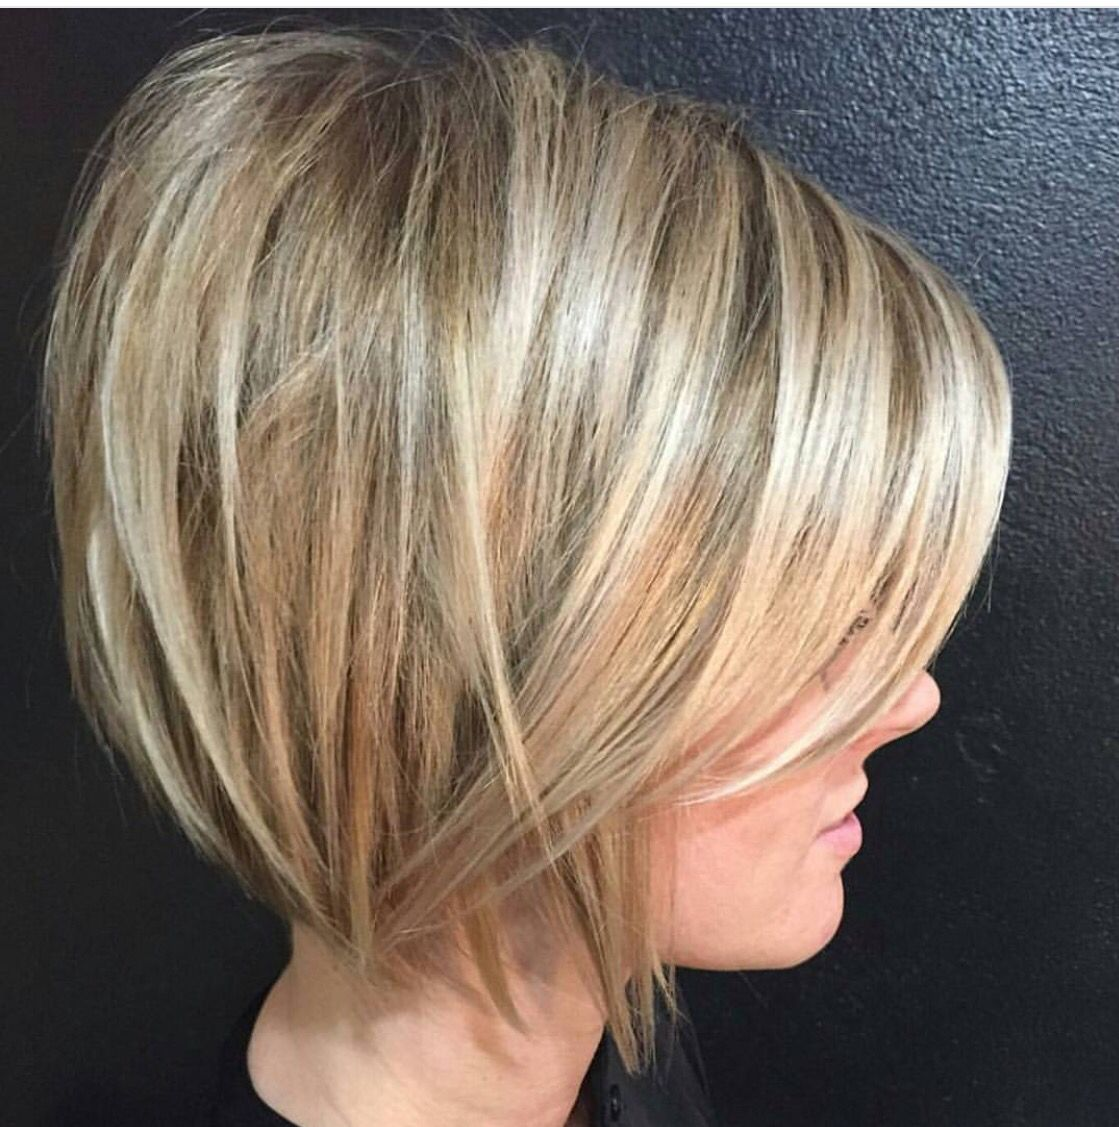 In love with this cut kapsel pinterest hair style haircuts